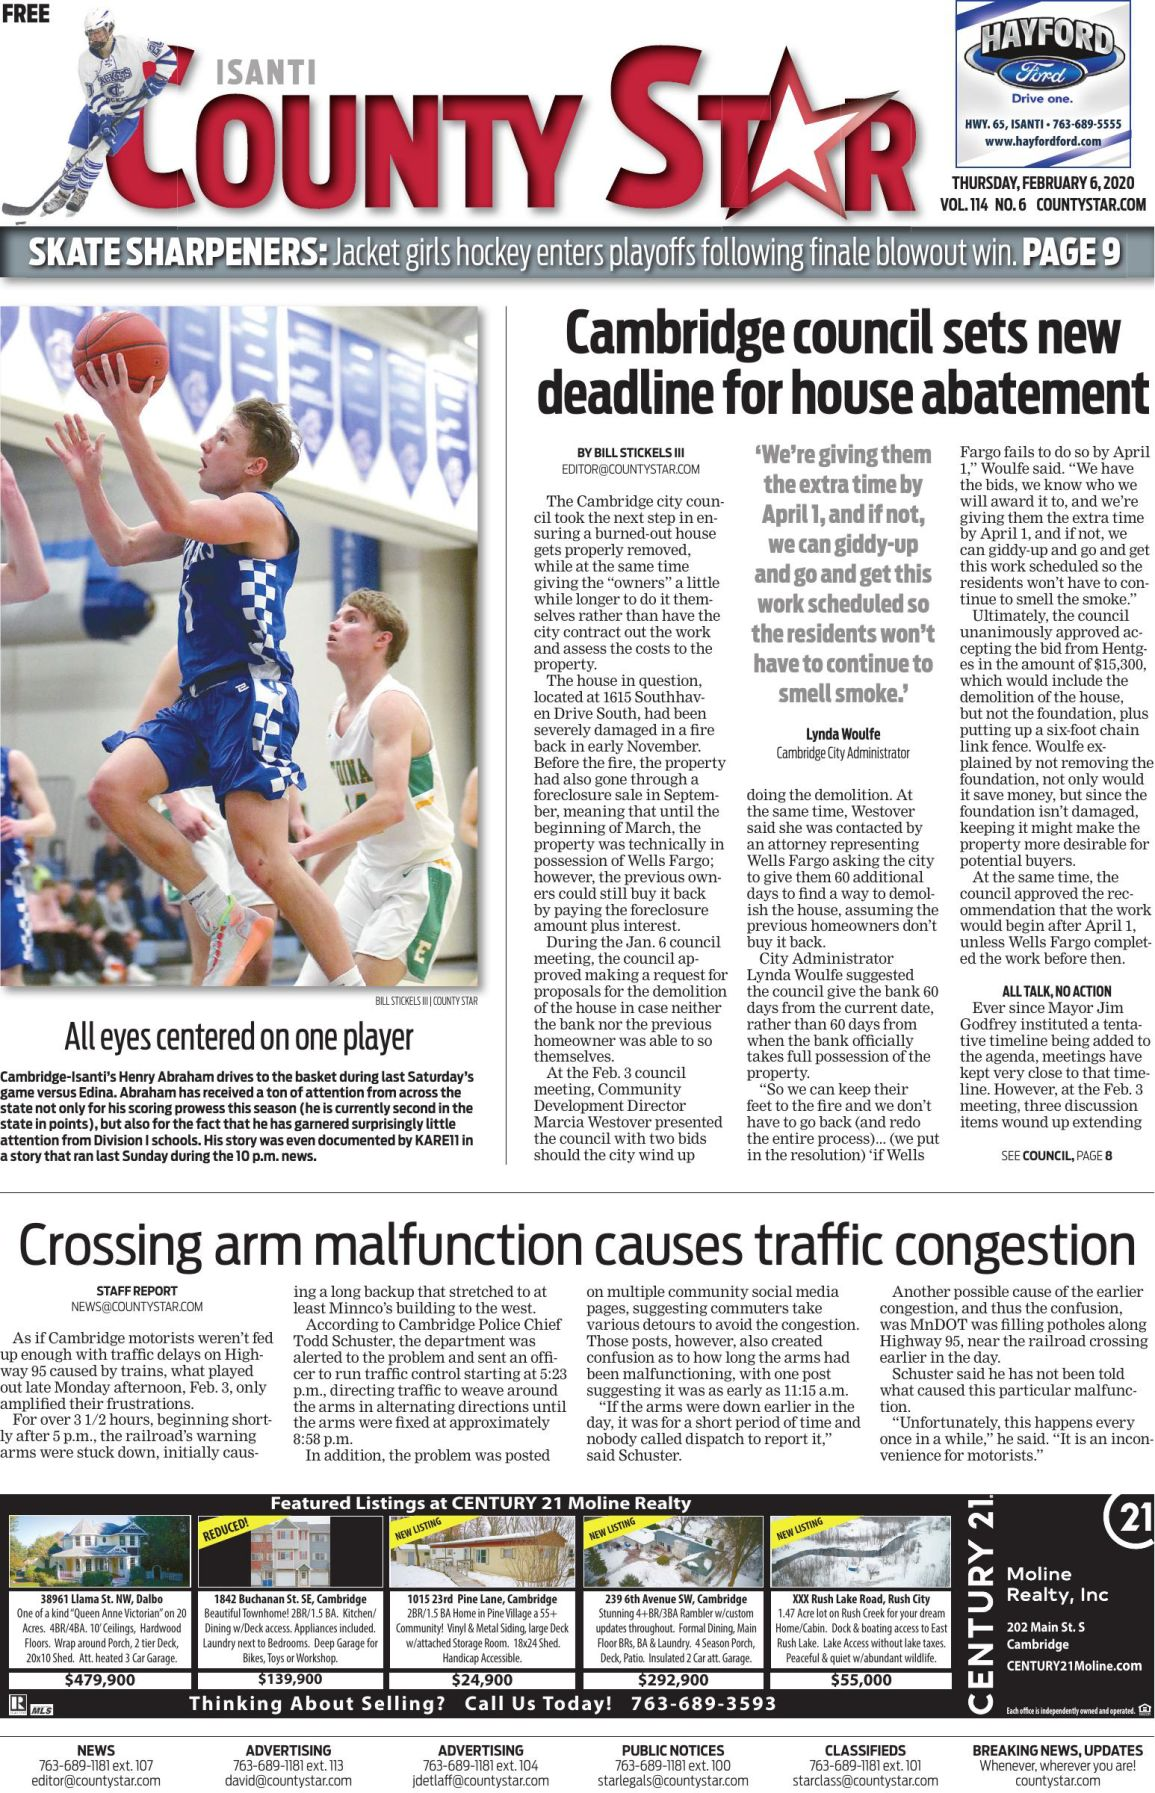 Isanti County Star February 6, 2020 e-edition